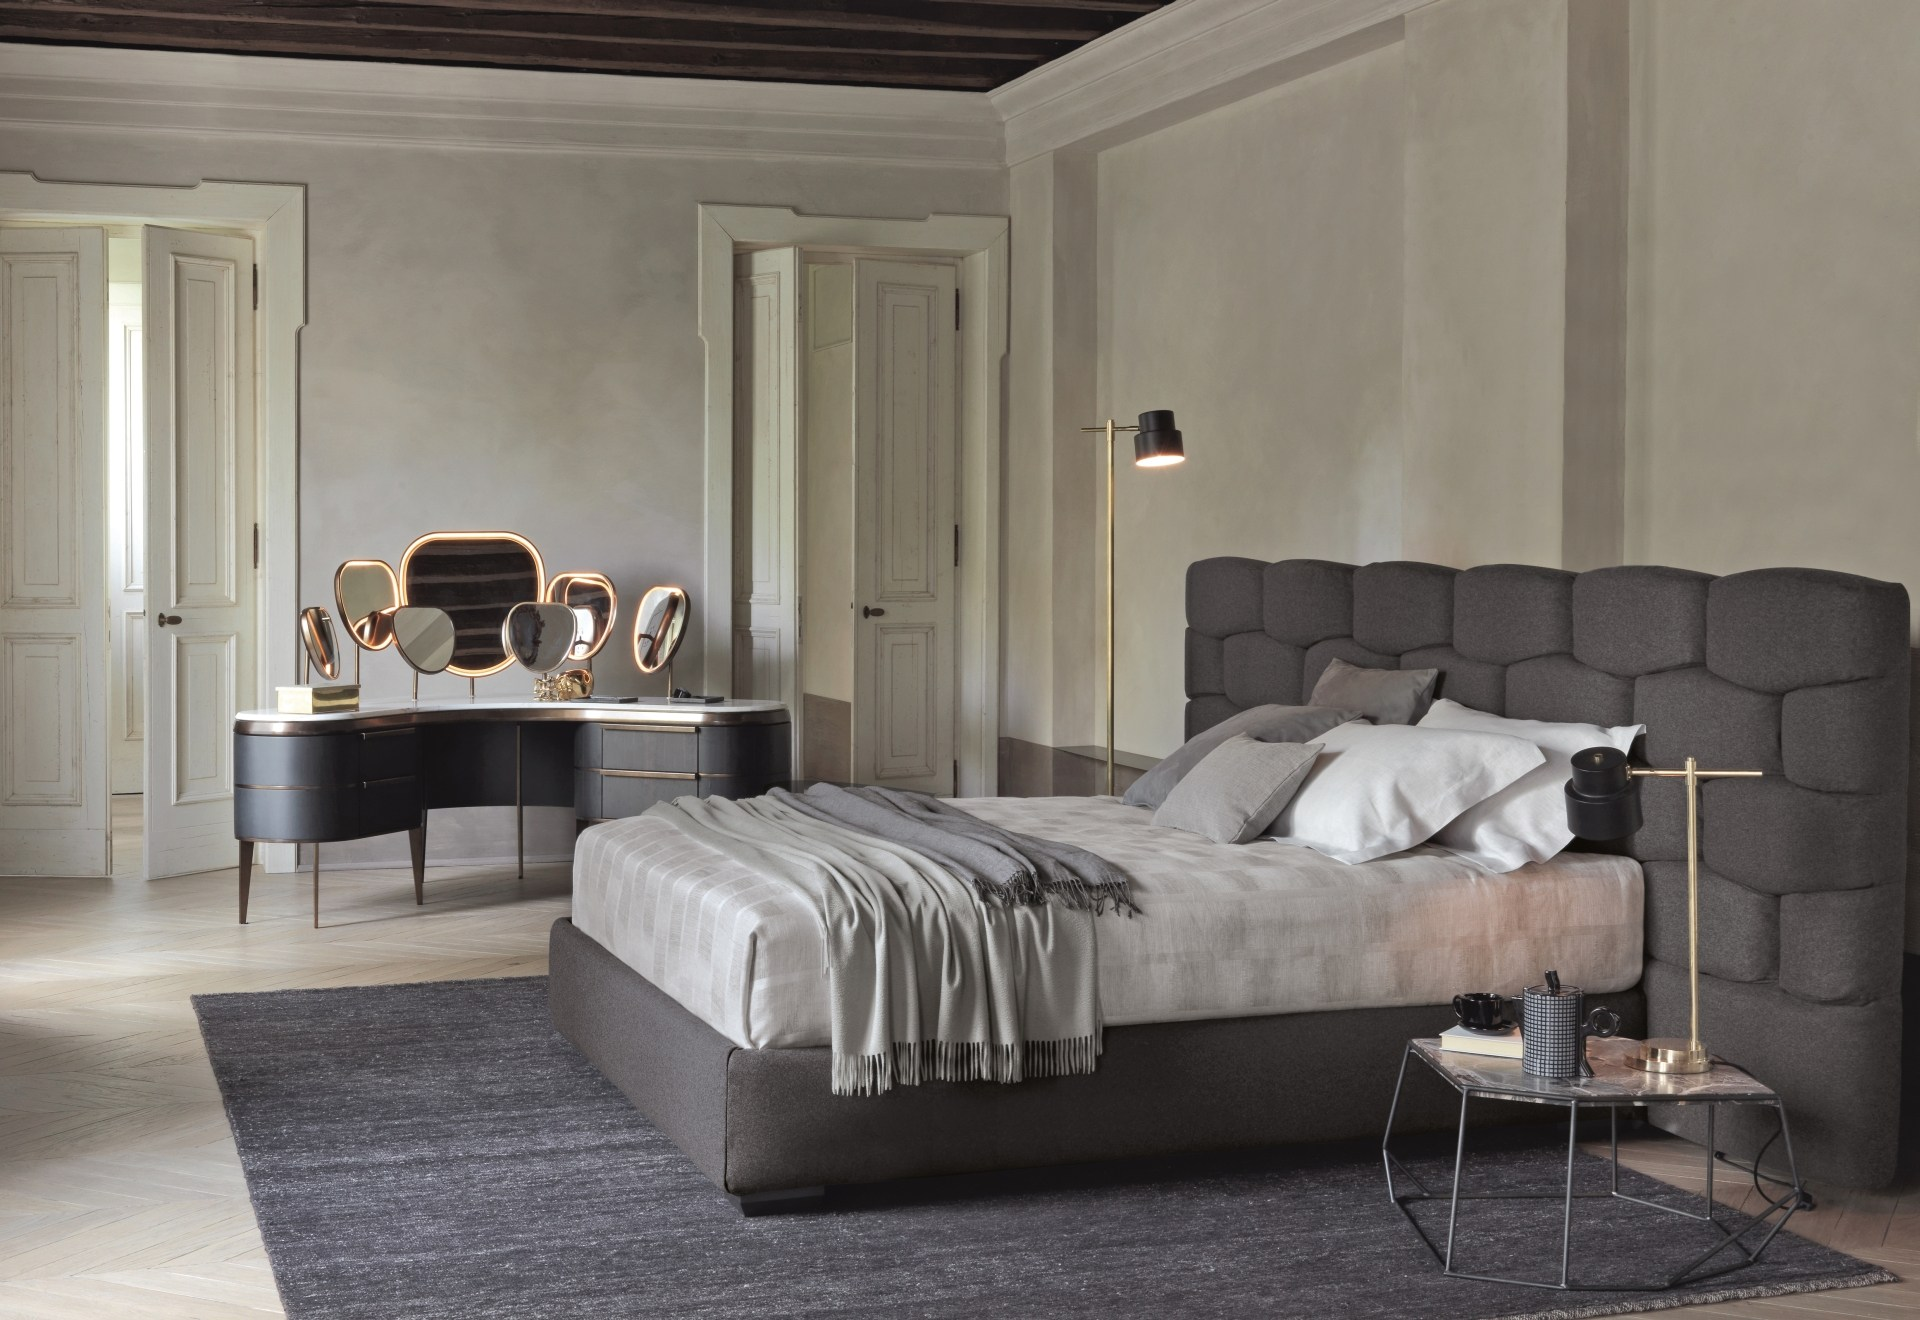 majal bett mit polsterkopfteil by flou design carlo colombo. Black Bedroom Furniture Sets. Home Design Ideas